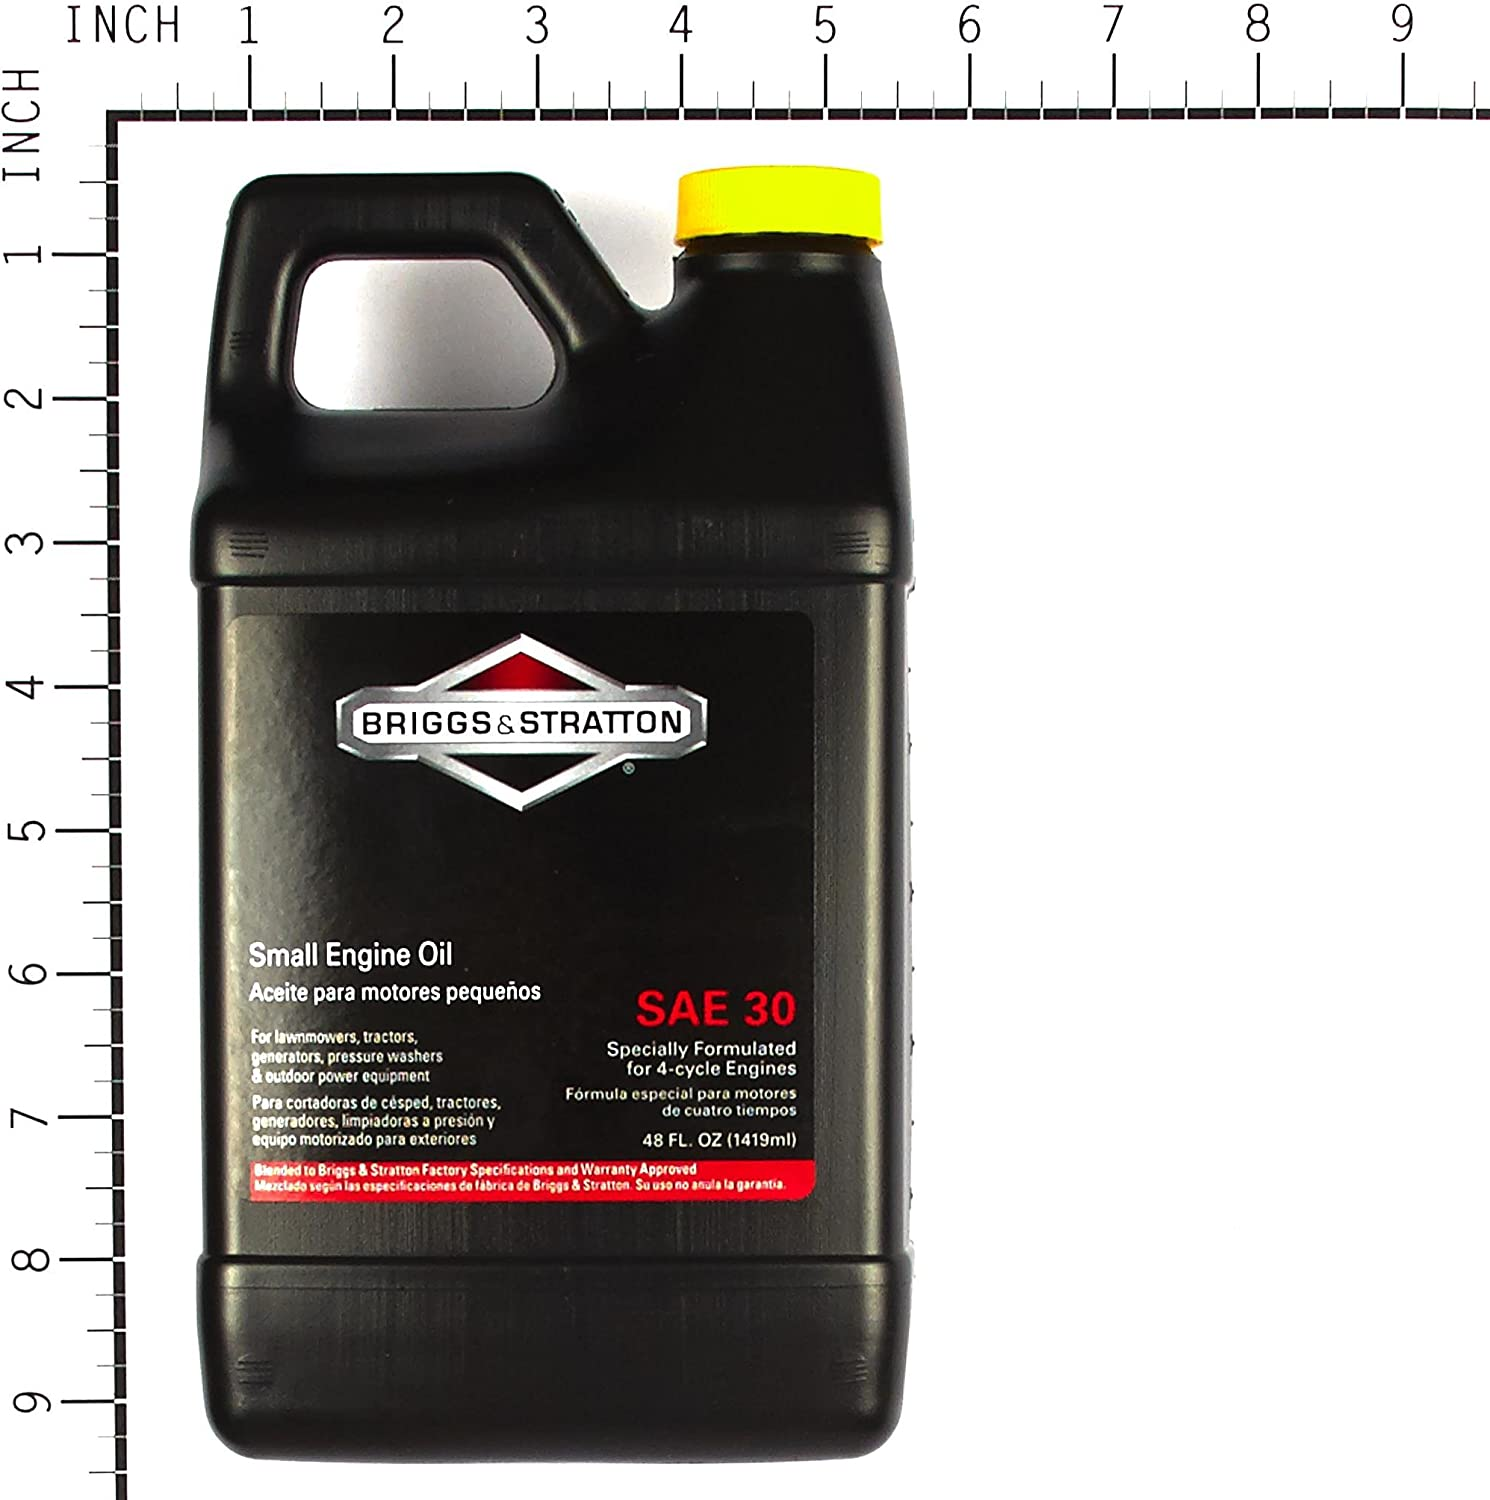 Best Oil For Toro Lawn Mower-Briggs & Stratton 100028 30W Engine Oil review